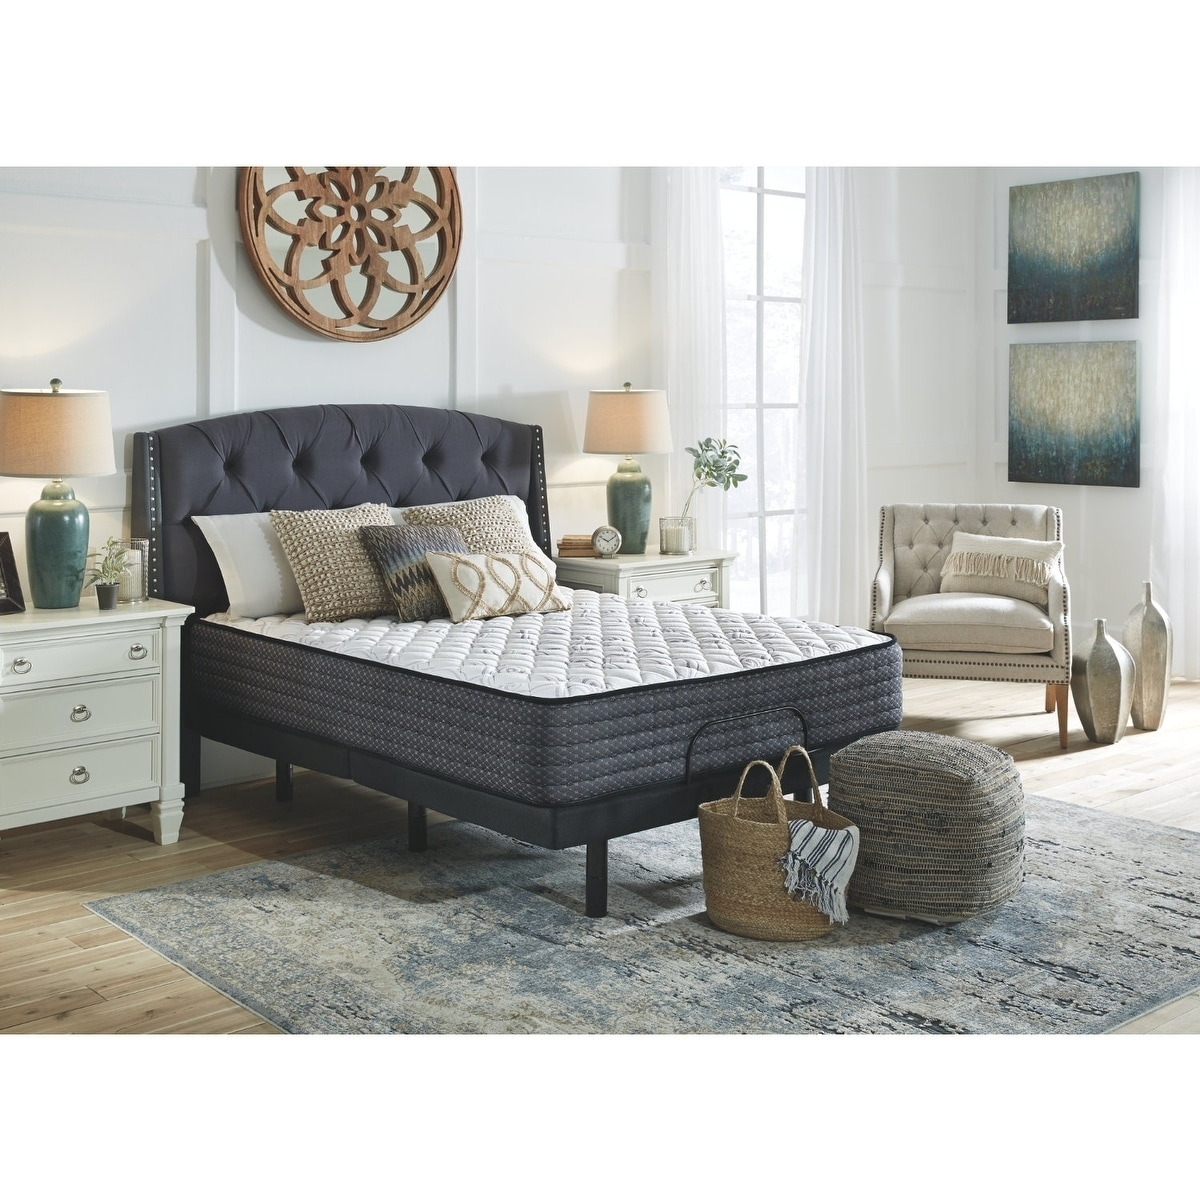 Ashley Furniture Signature Design Limited Edition Firm 13 Inch King Mattress In White